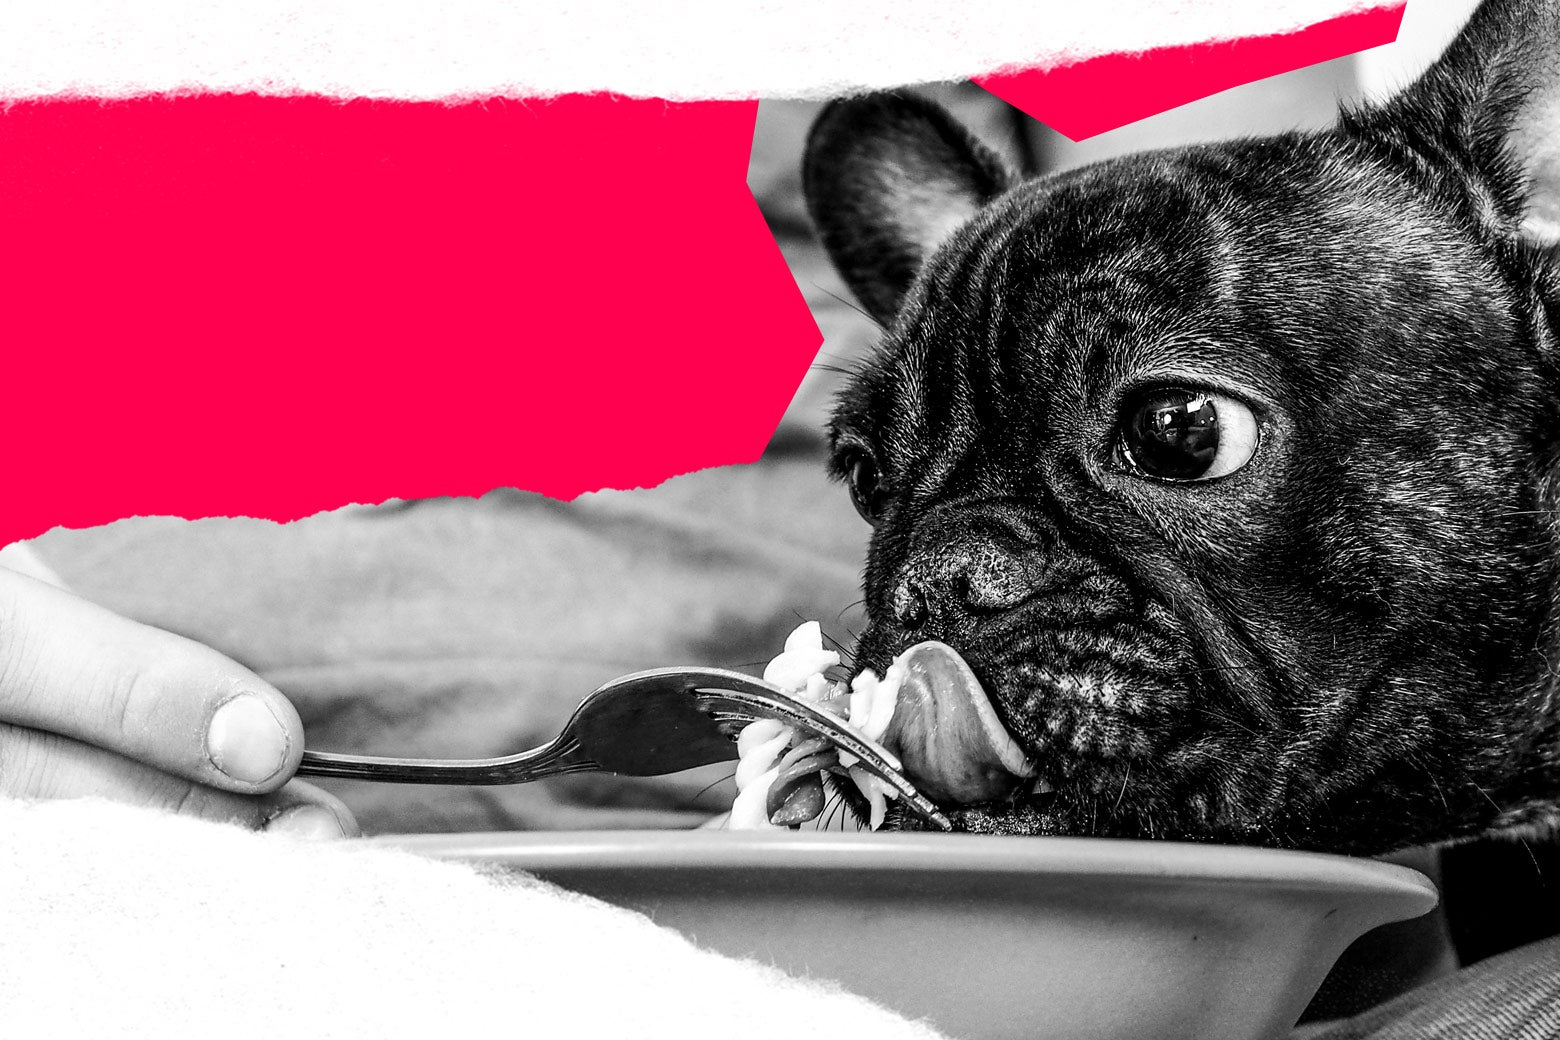 A pet owner feeds his dog from a plate with a fork.